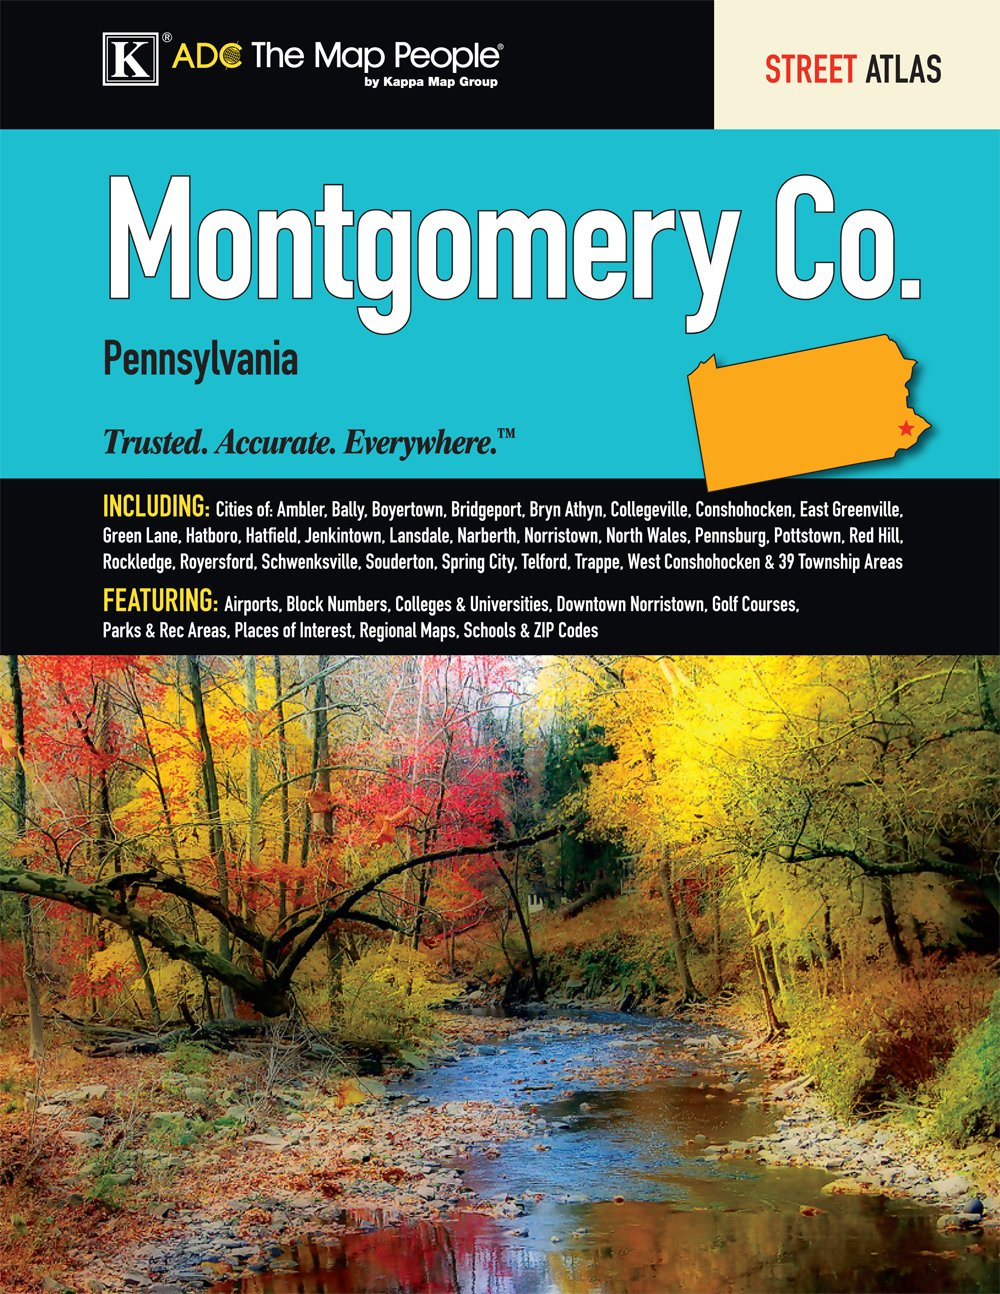 Norristown Pa Zip Code Map.Montgomery County Pa Street Atlas Kappa Map Group 9780762580415